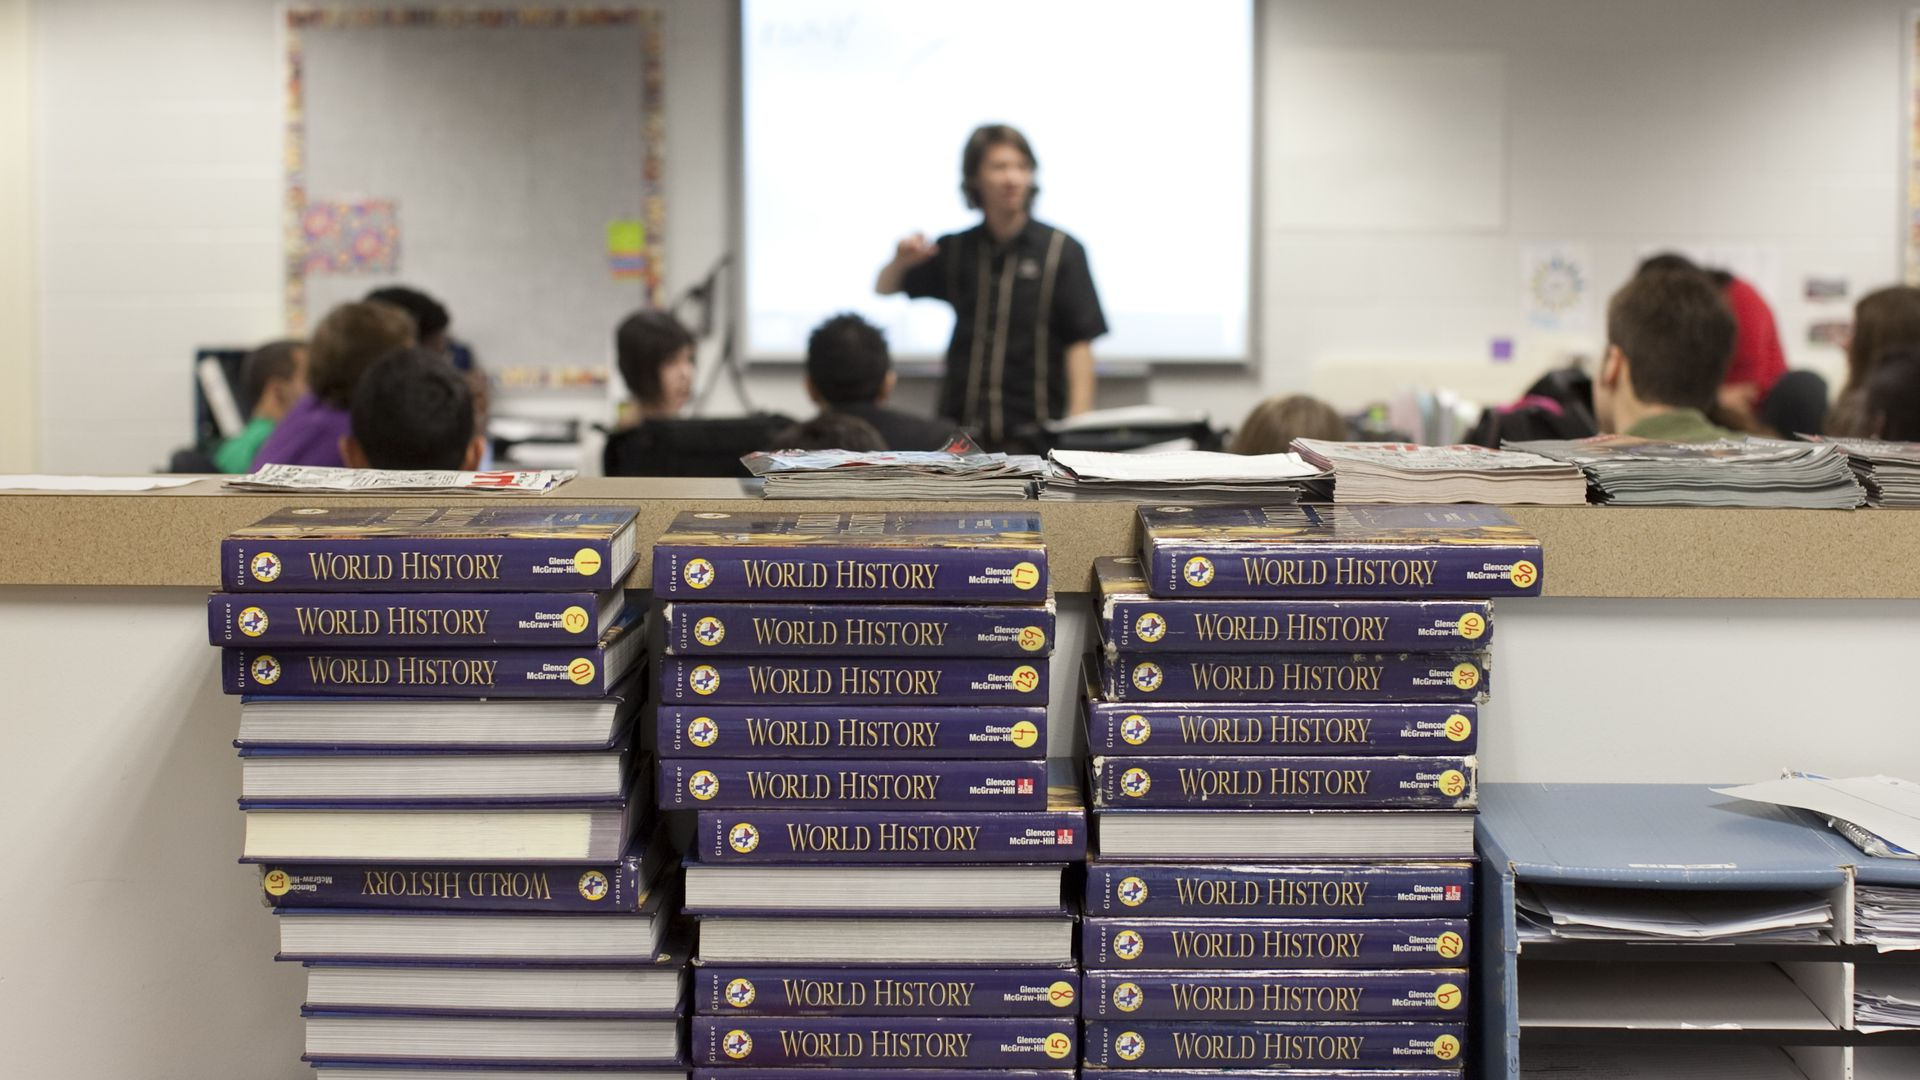 World history textbooks stacked up on a table.